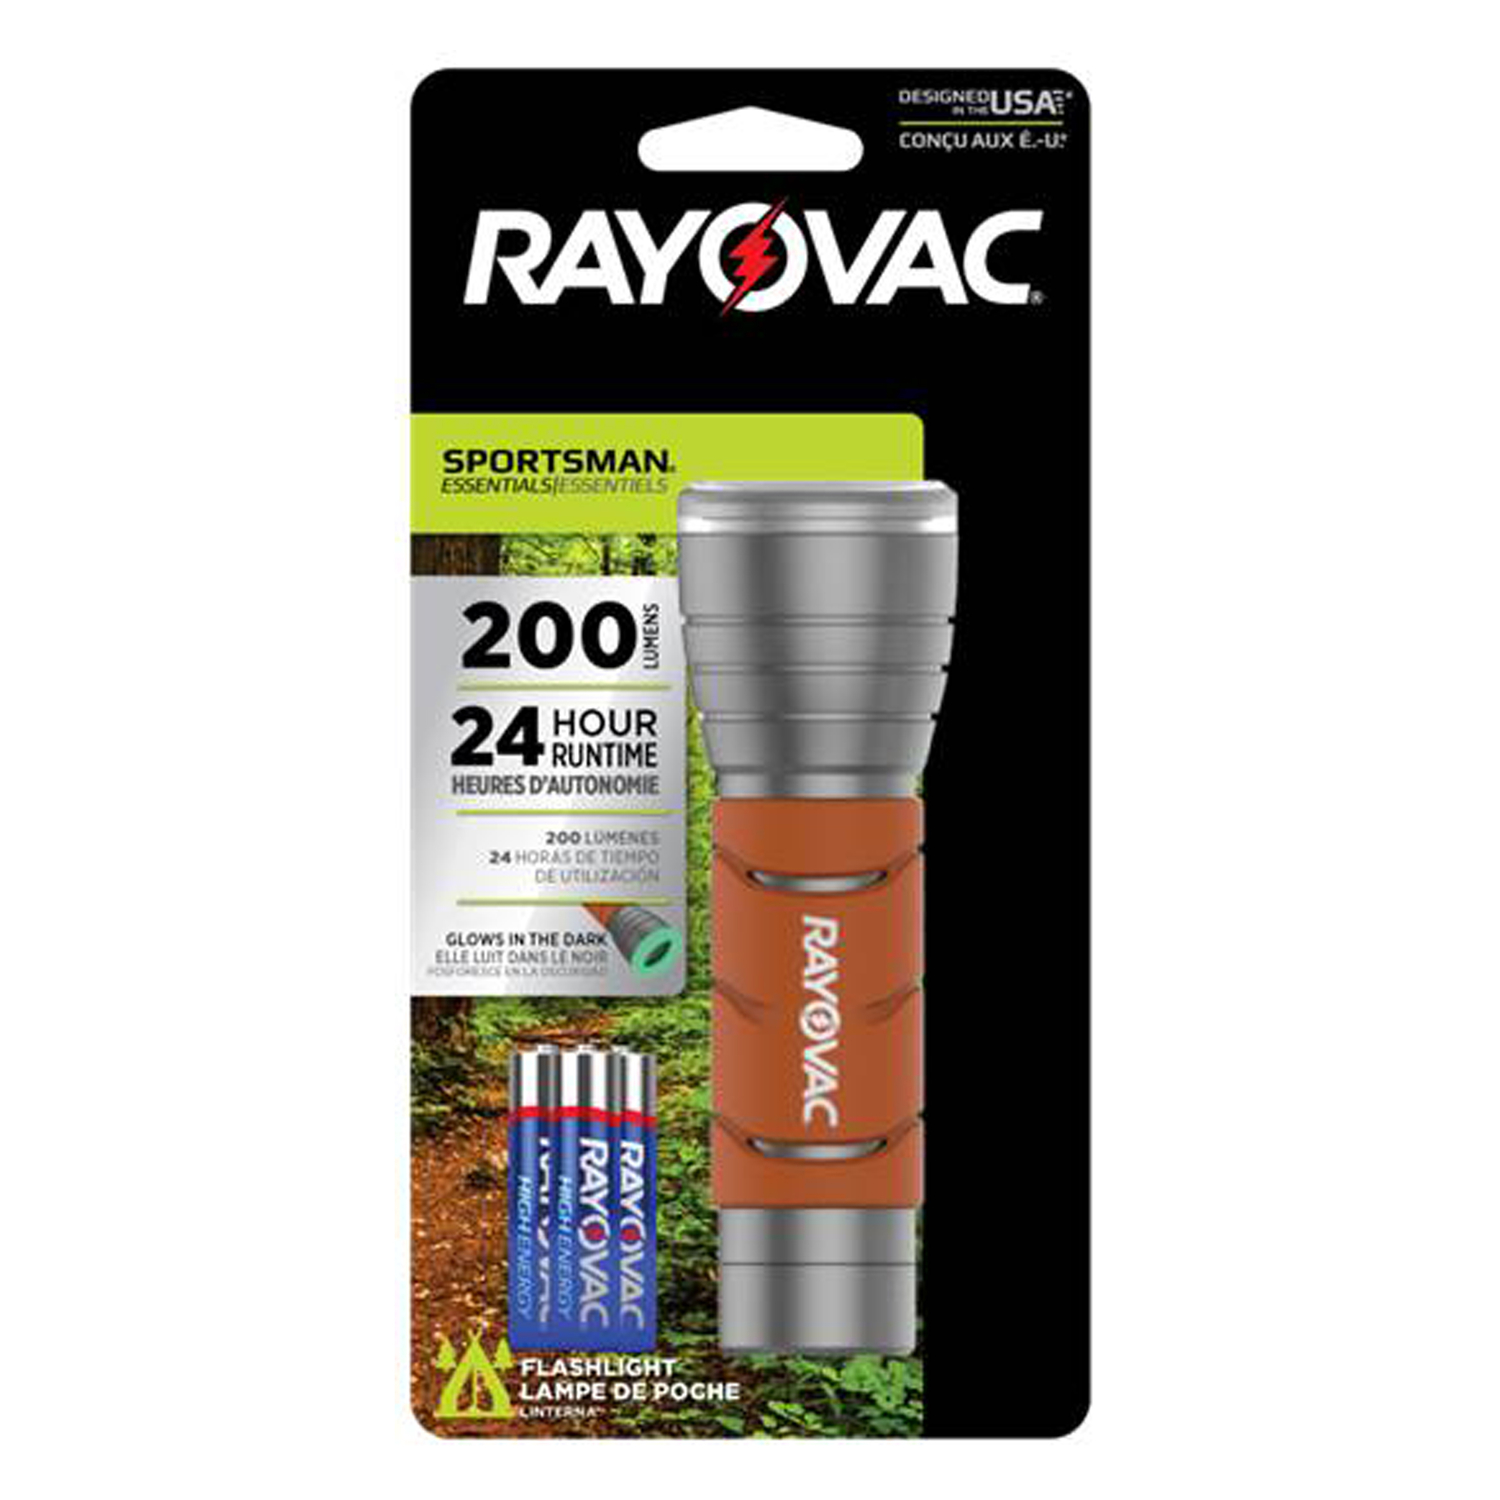 Rayovac  Sportsman Essentials  200 lumens Orange  LED  Flashlight  AAA